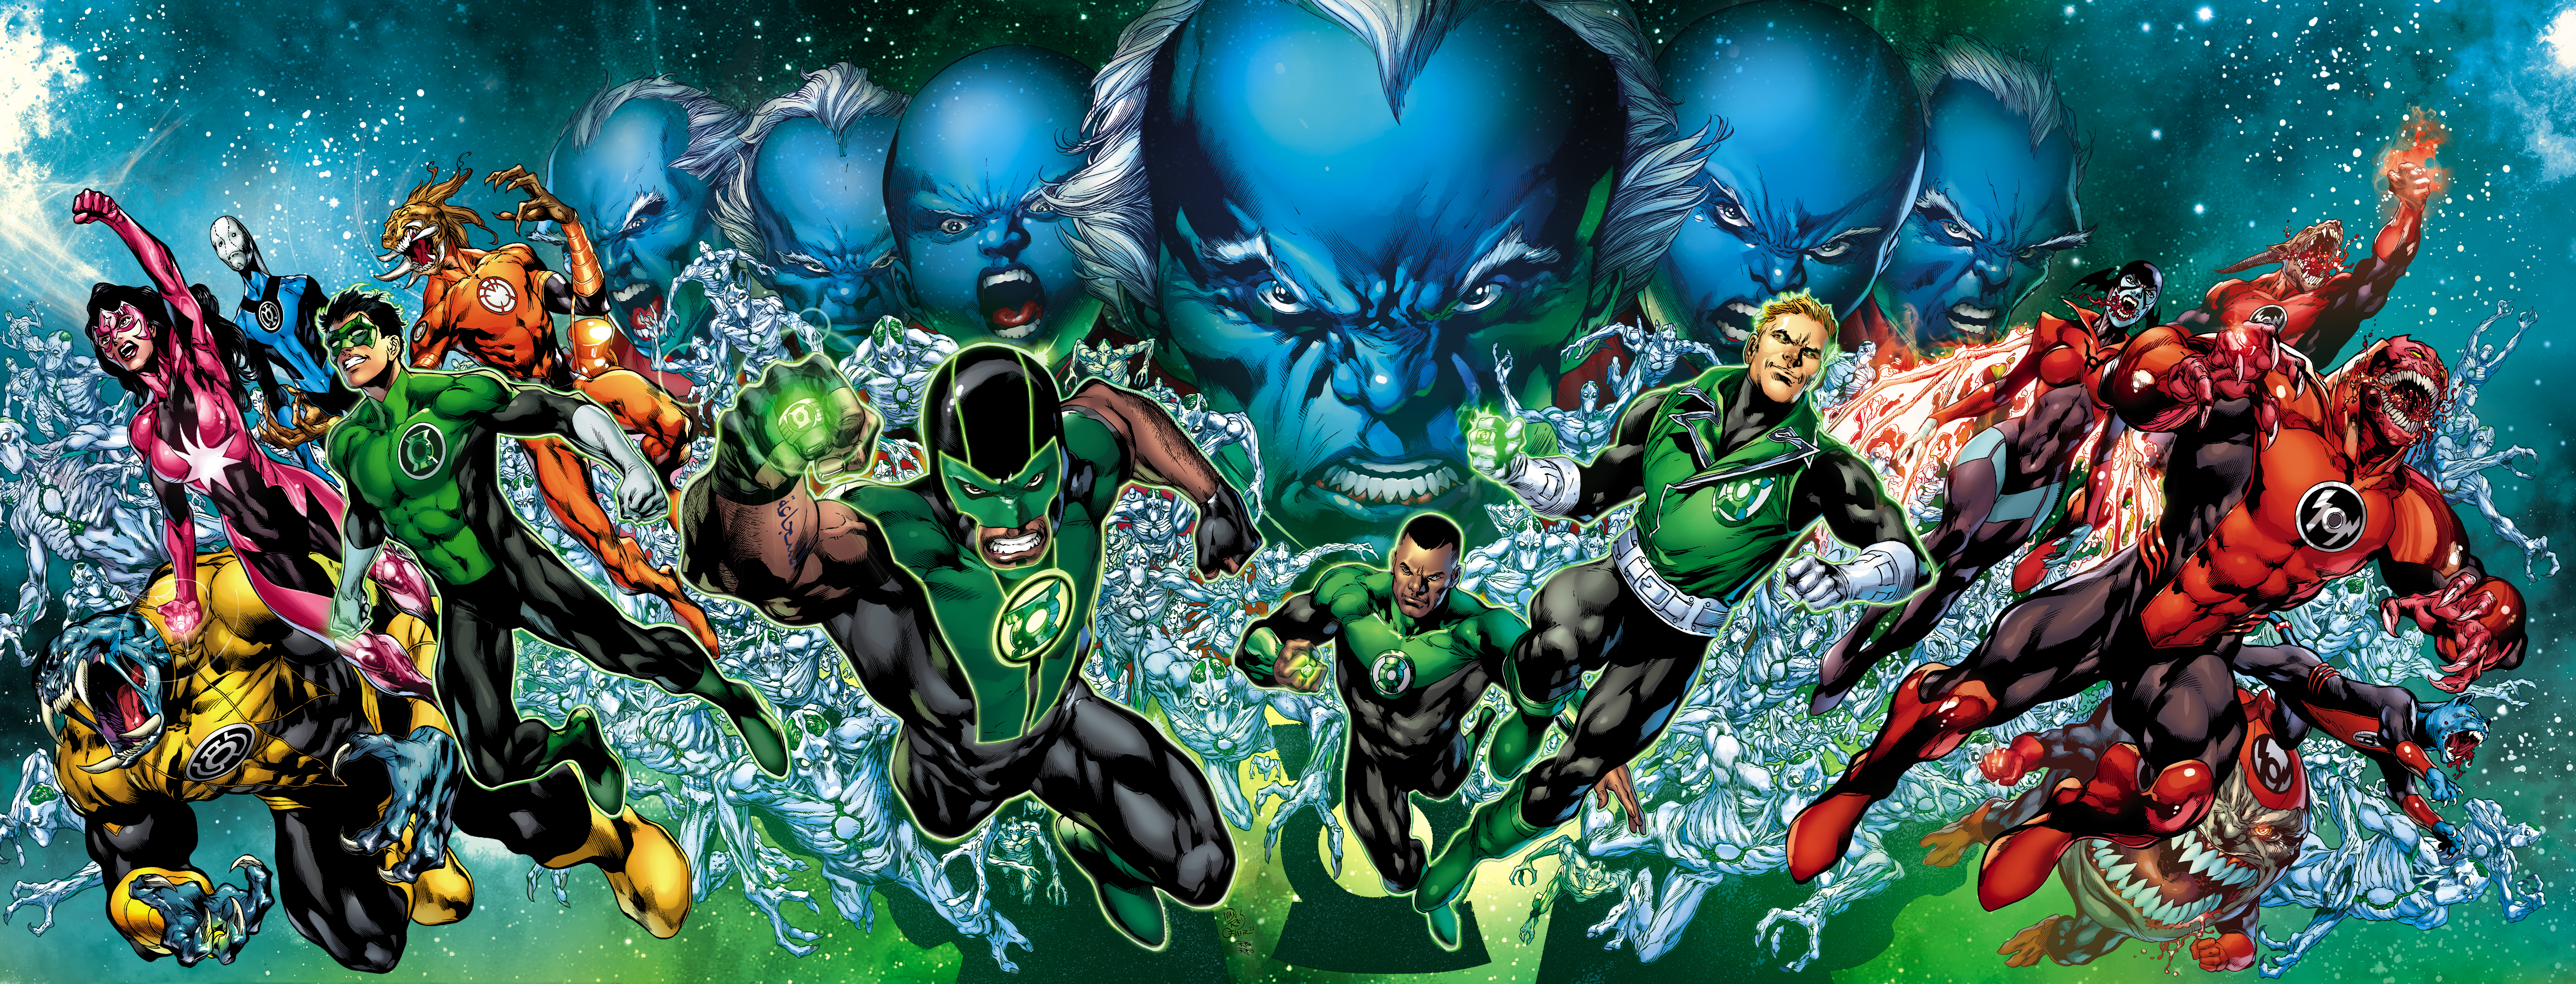 31 4K Ultra HD Green Lantern Wallpapers